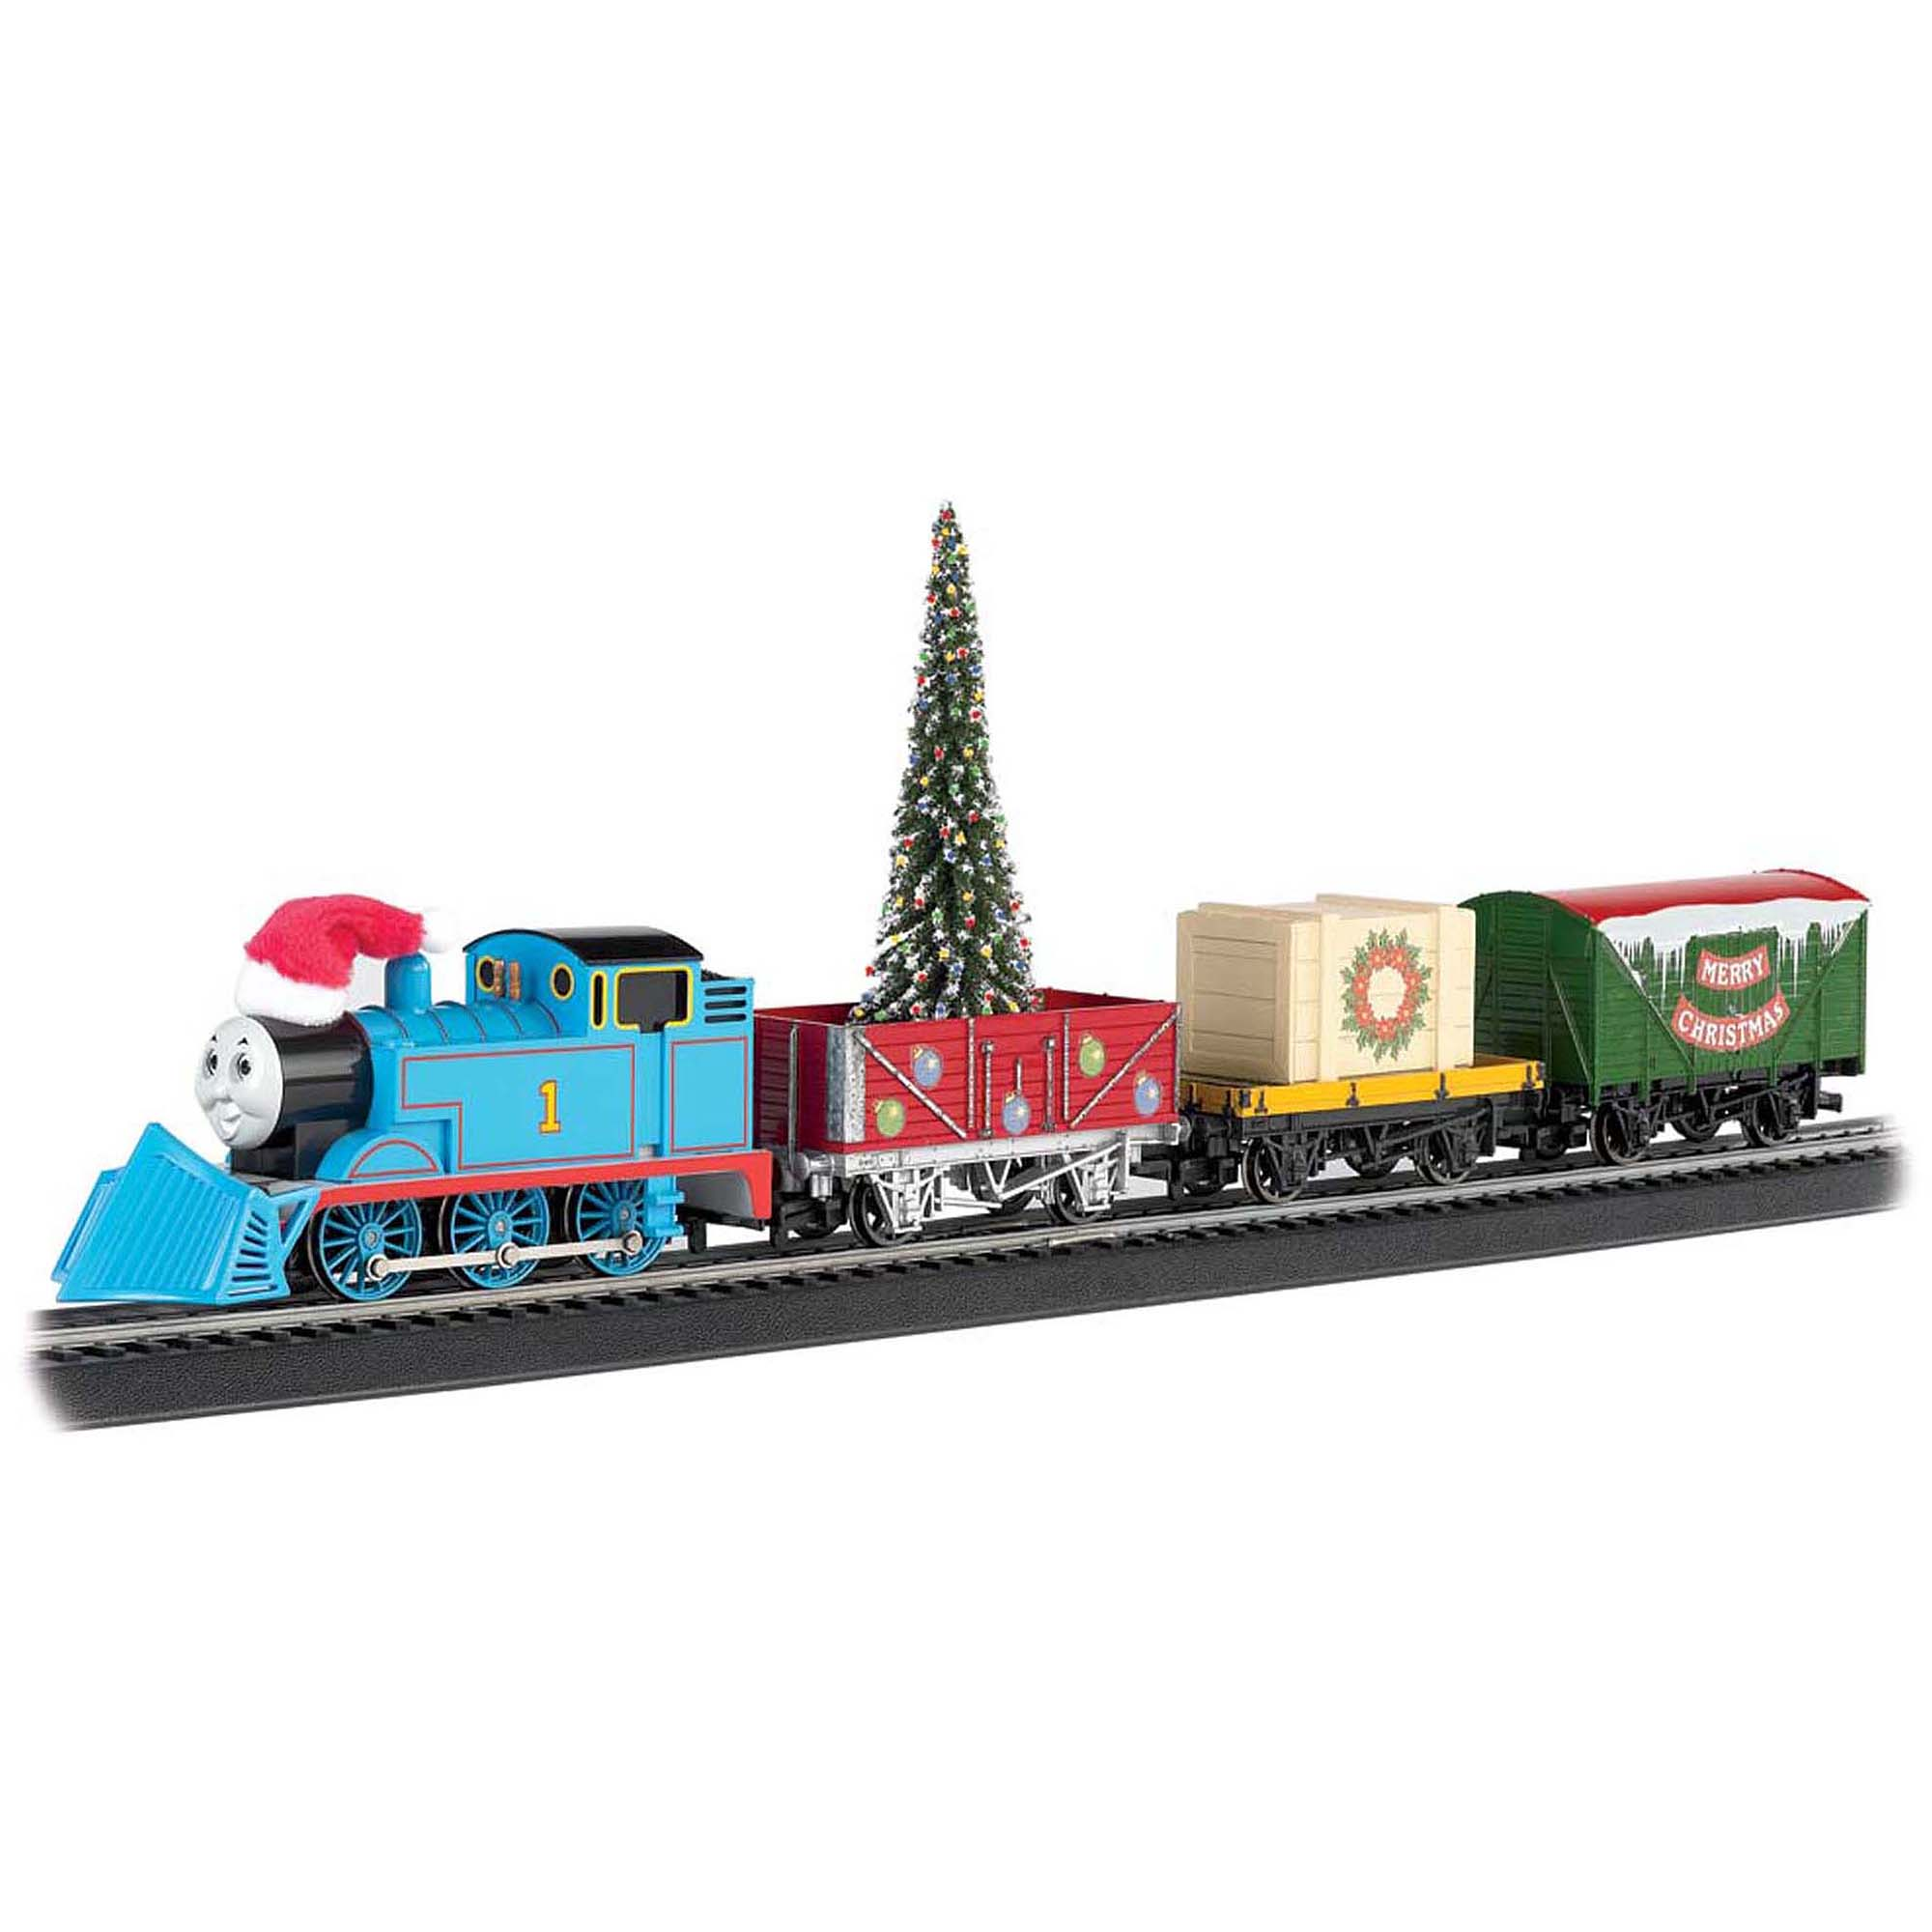 Bachmann Trains Thomas and Friends Thomas' Christmas Express HO Scale Ready-to-Run Electric Train Set by Bachmann Trains